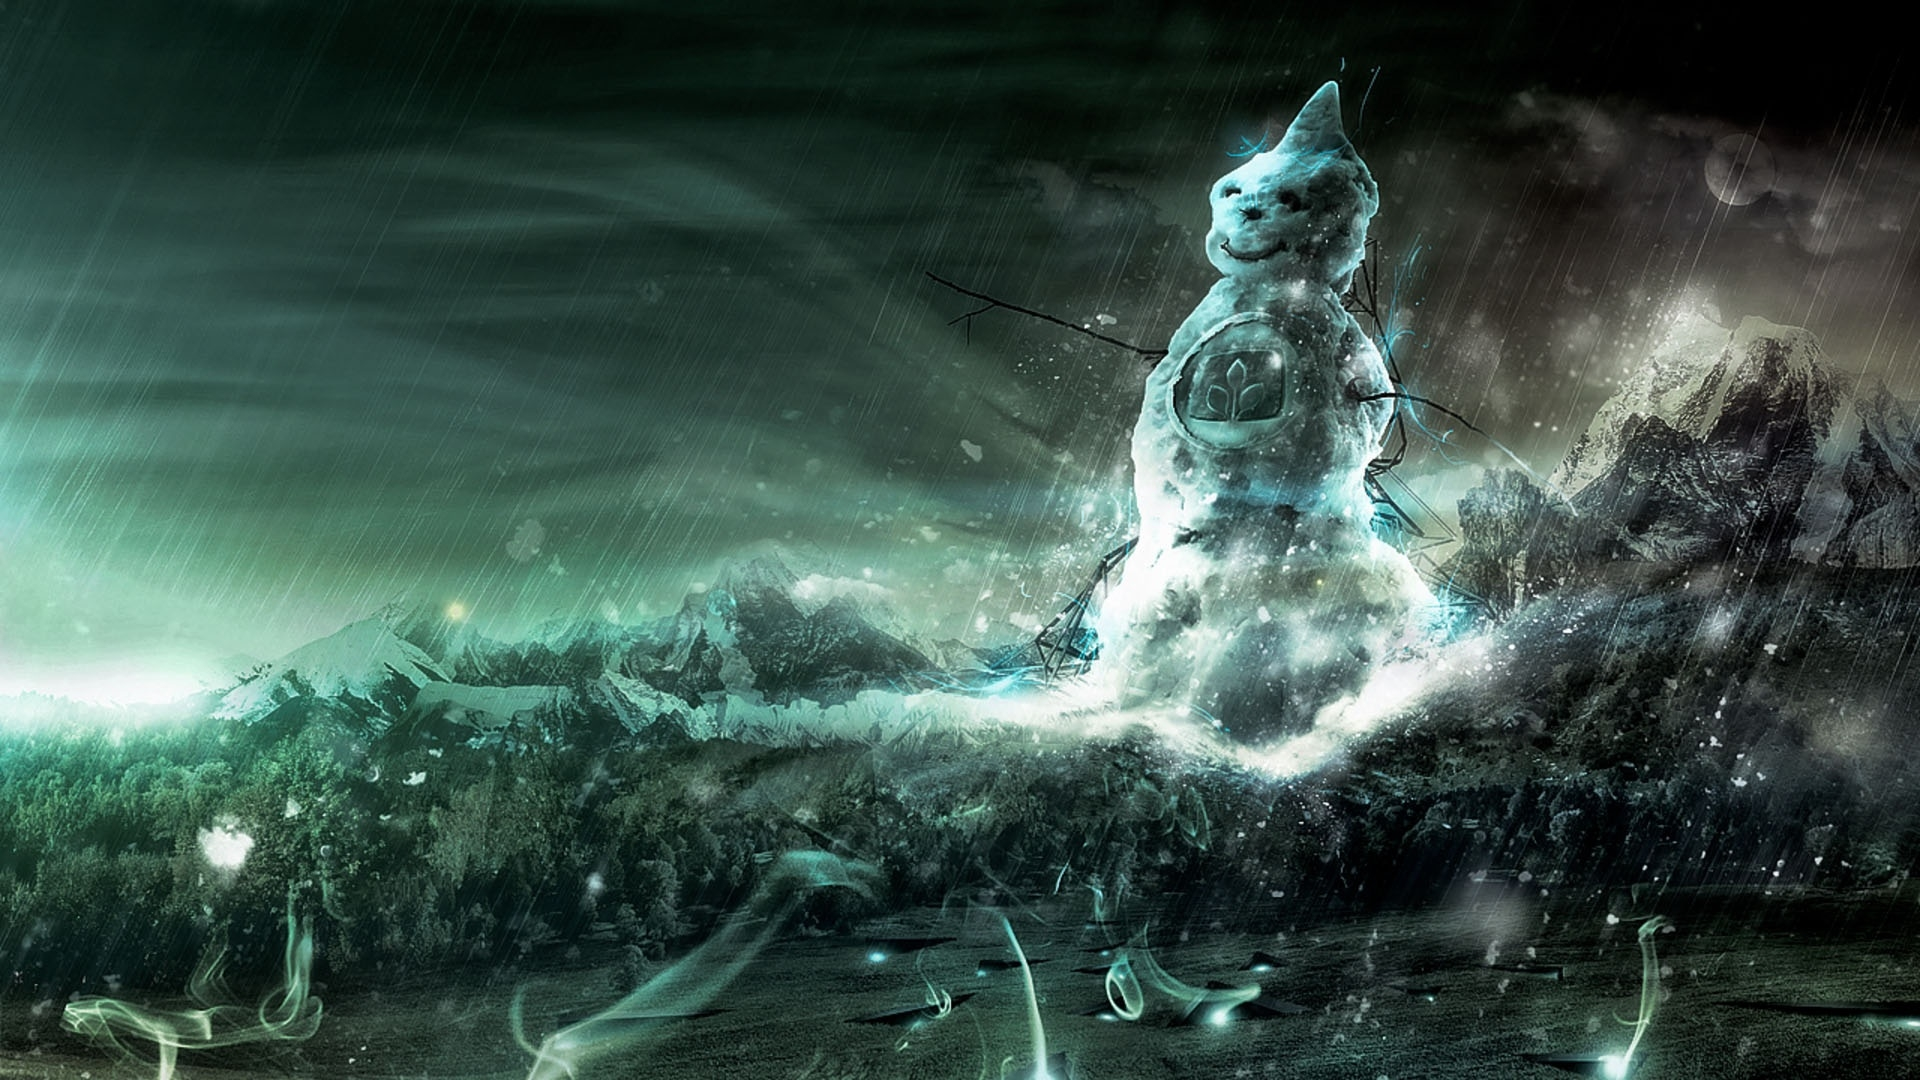 epic 3d wallpapers hd - photo #15